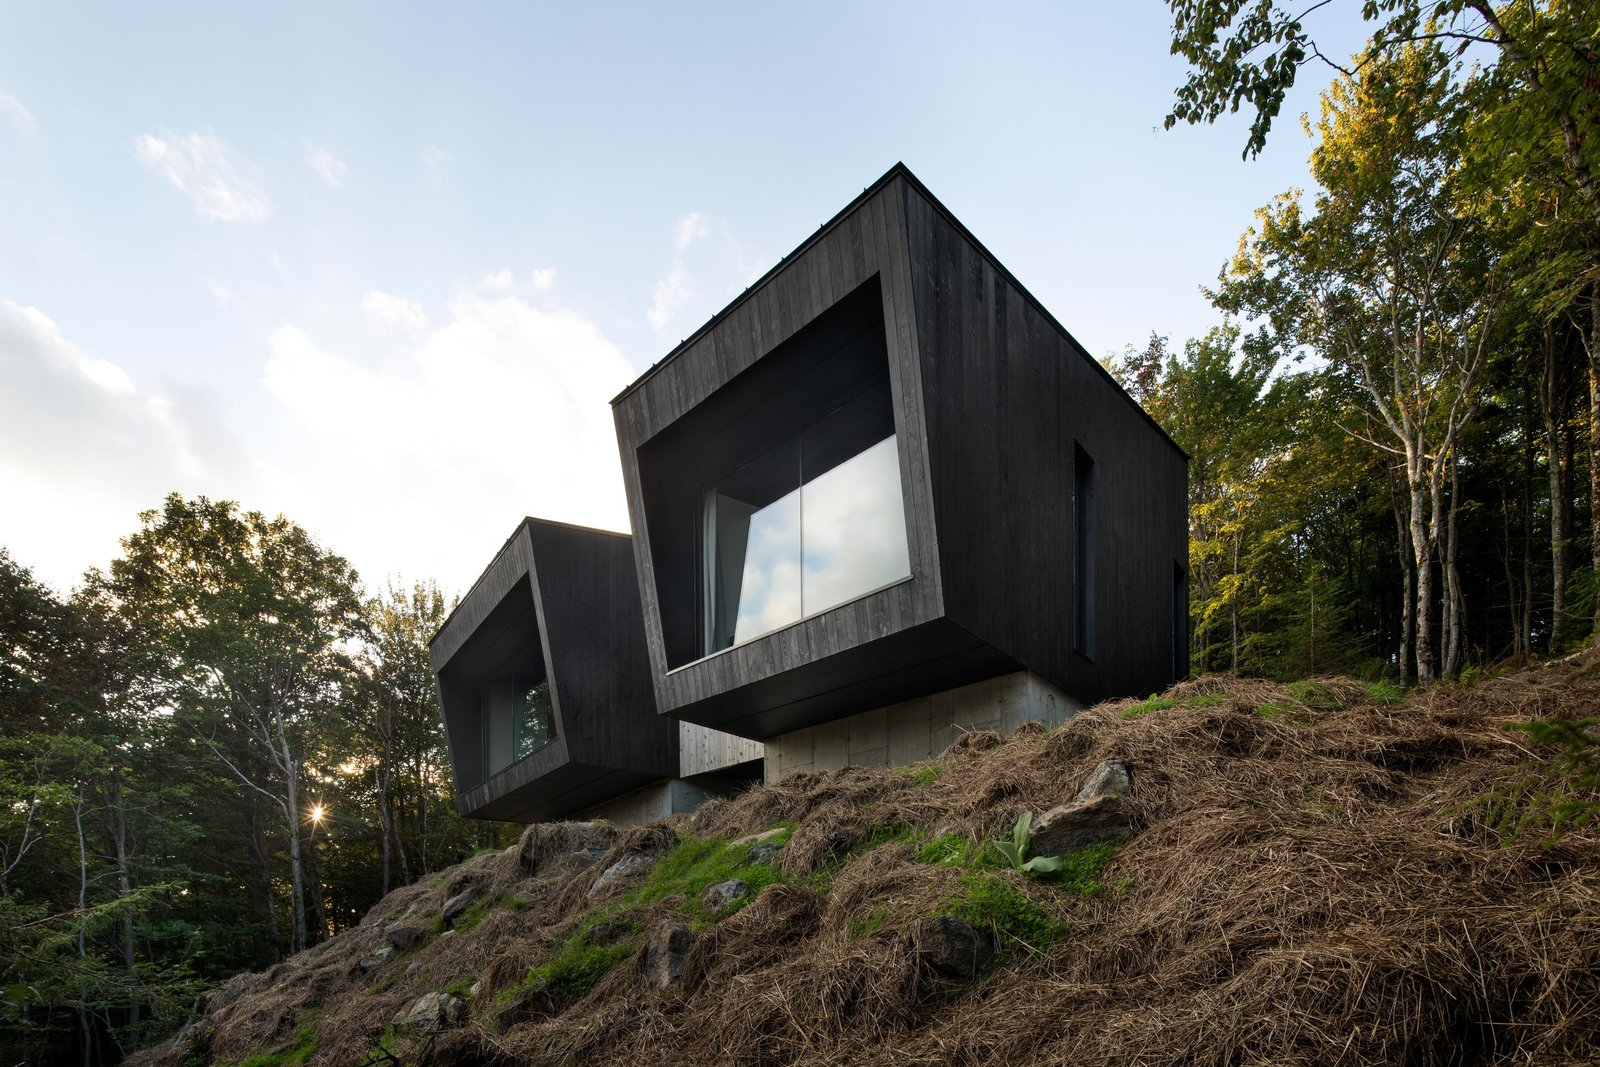 This Modern Cabin in Canada Looks Like a Gigantic Pair of Binoculars